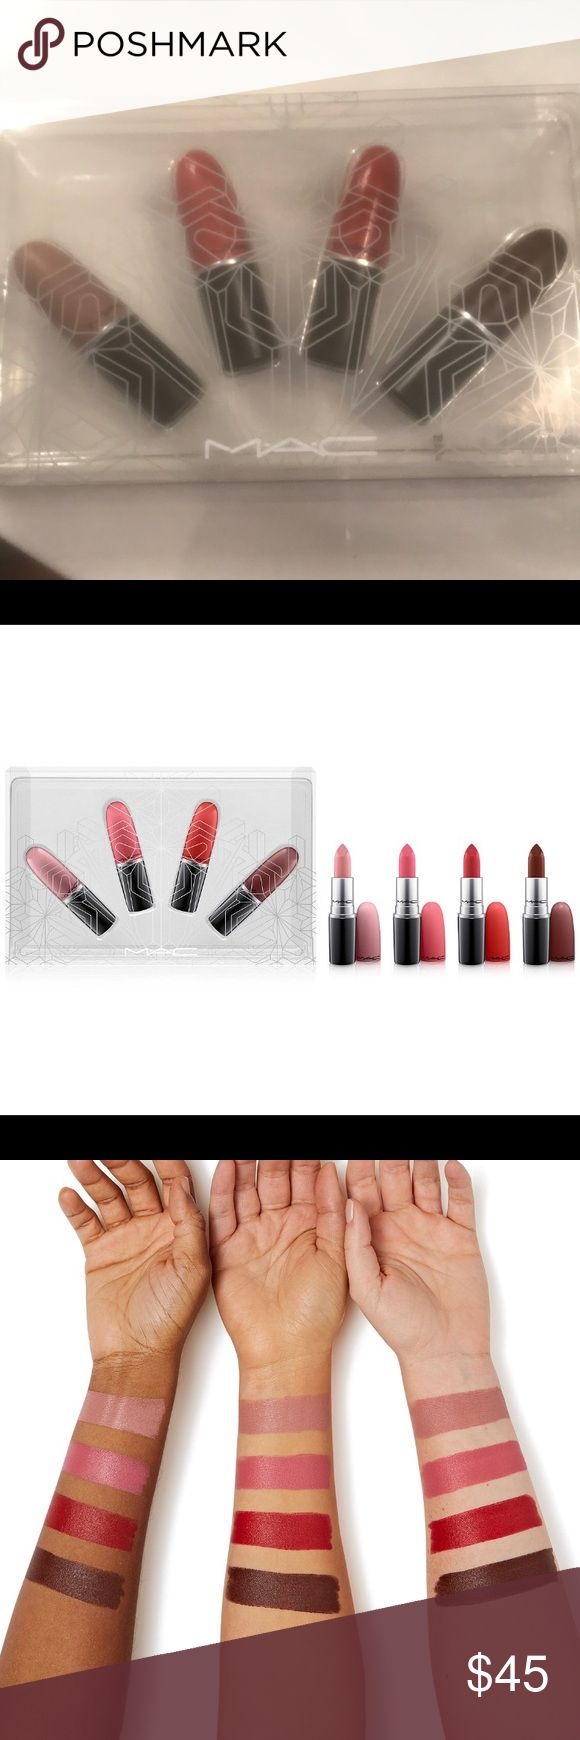 MAC SNOW BALL LIP KIT/WARM Brand new limited edition MAC lip kit. Never used or swatched. The kit includes 4 full sized lipsticks. A 70$ value. No trades.  Colors included: Nude Du Jour (light mauve, matte) Nouvelle Vouge (soft blue pink, matte) Russian Red (intense bluish-red, matte) Antique Velvet (intense brown, matte) MAC Cosmetics Makeup Lipstick